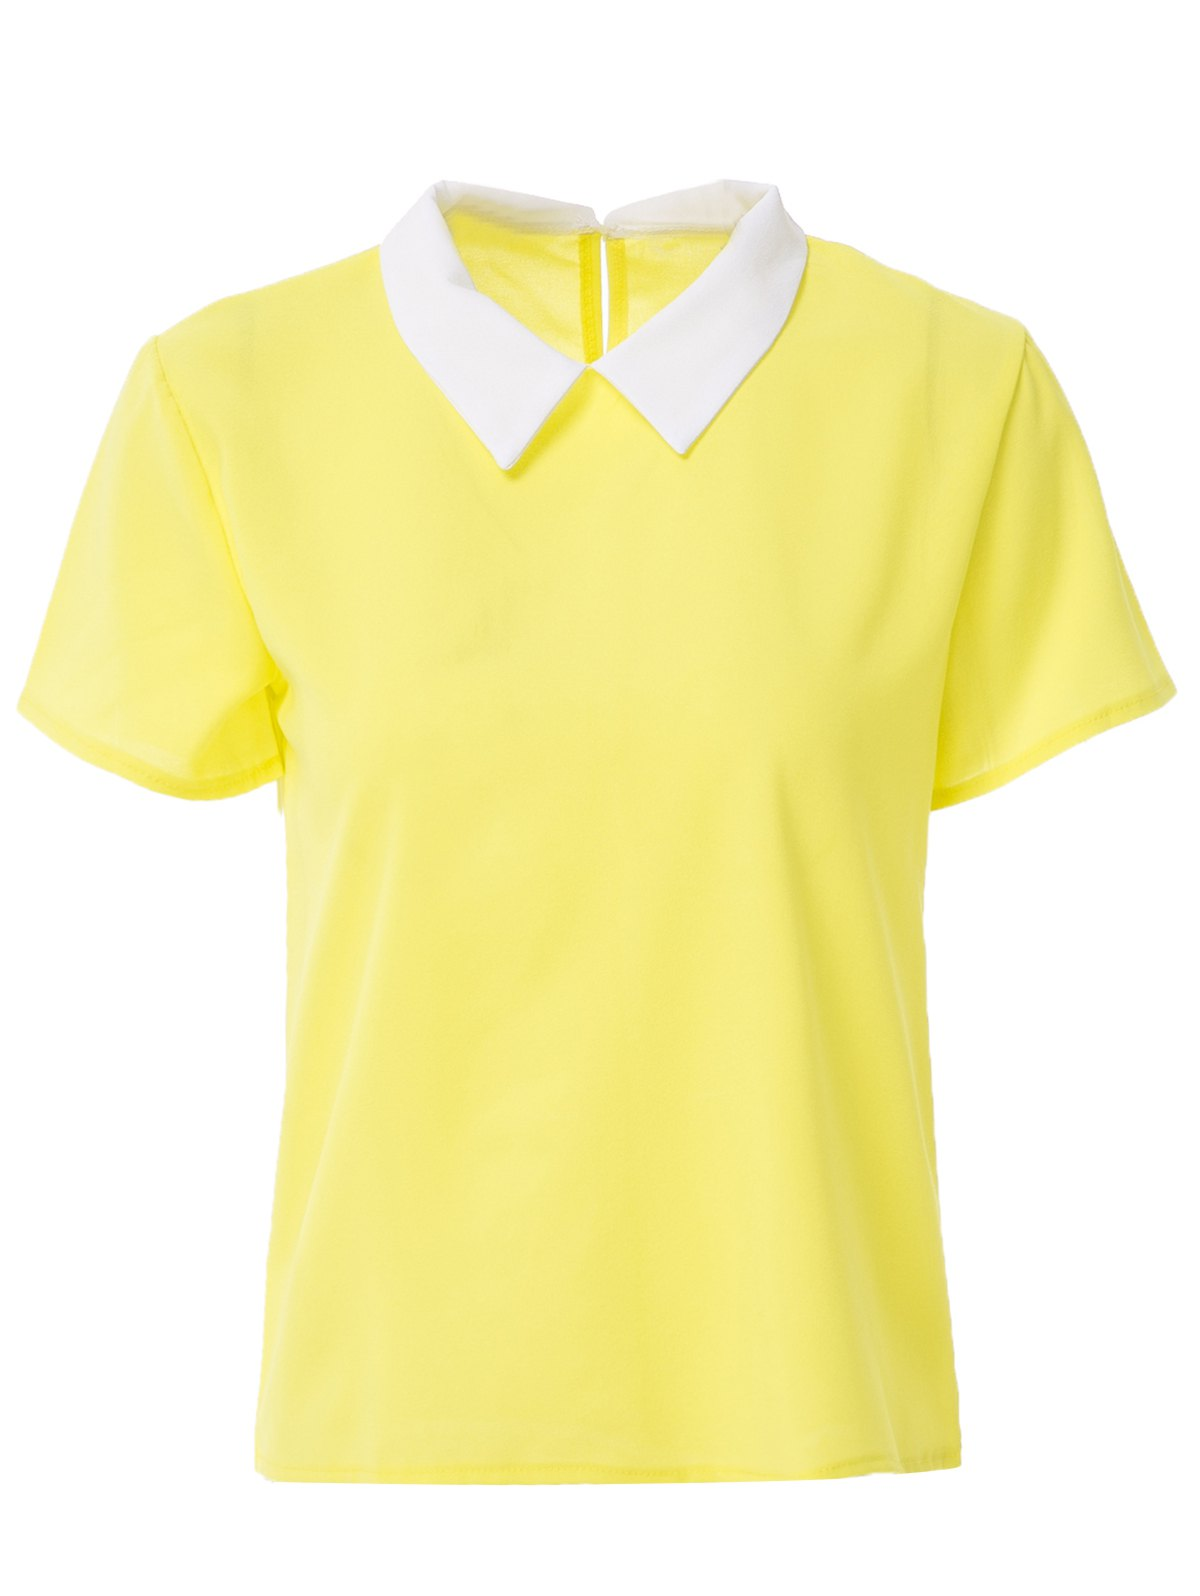 Short Sleeve Candy Color Blouse For Women